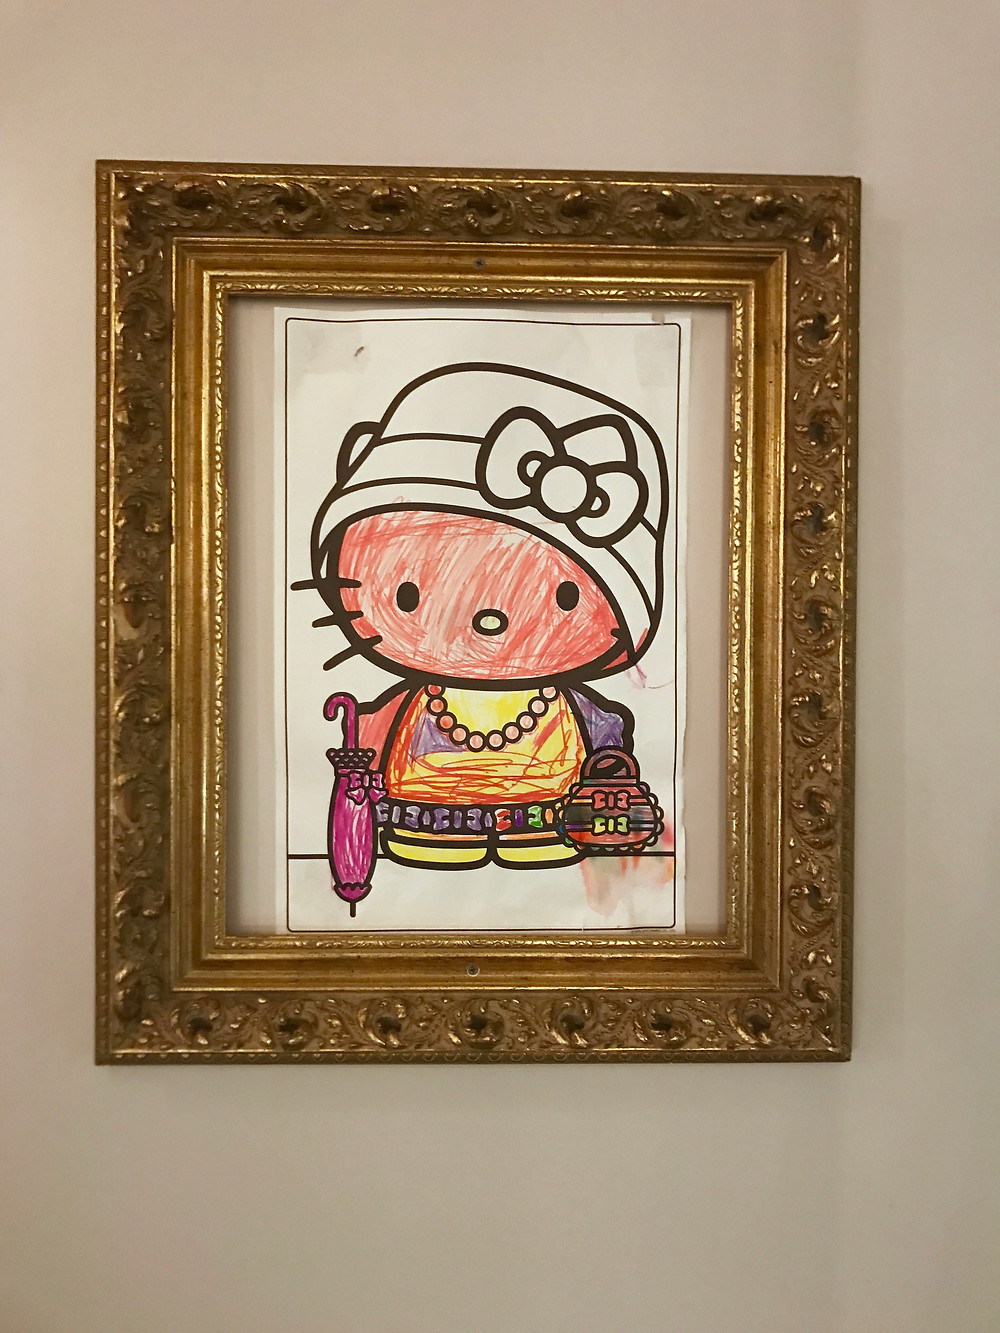 hello Kitty framed artwork at Dilworth Tasting Room in Charlotte NC